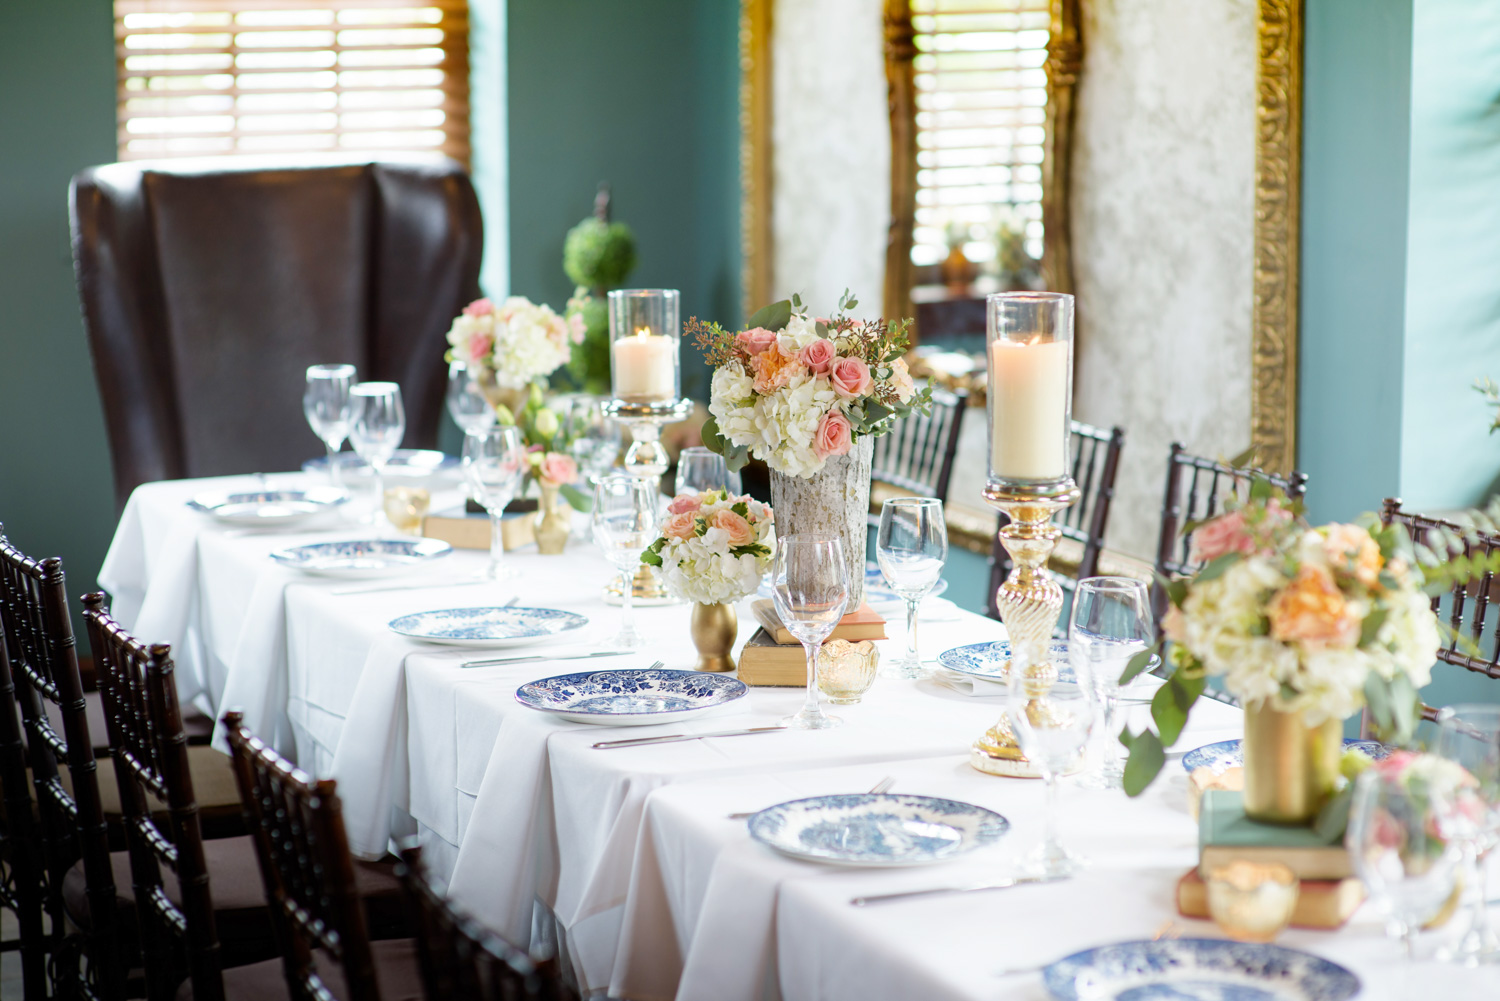 The Tea Room for Private Events